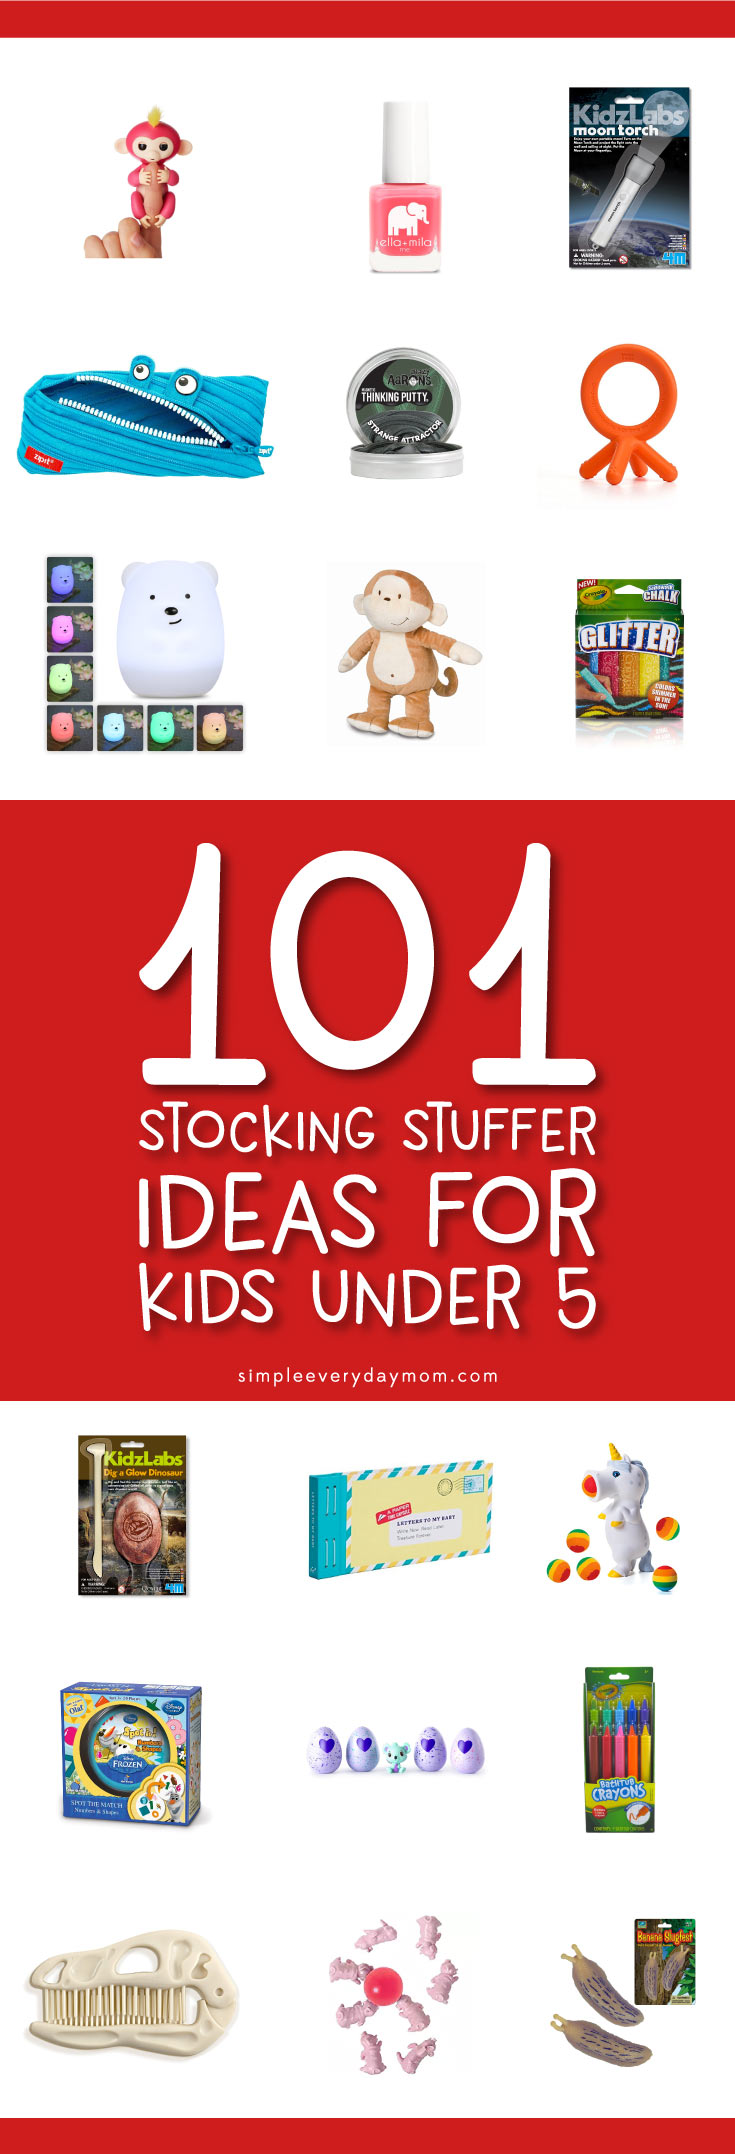 You'll find over 100 ideas for some of the best stocking stuffers for kids under 5. There's everything from arts & crafts, to toys, to personal care items and beyond!